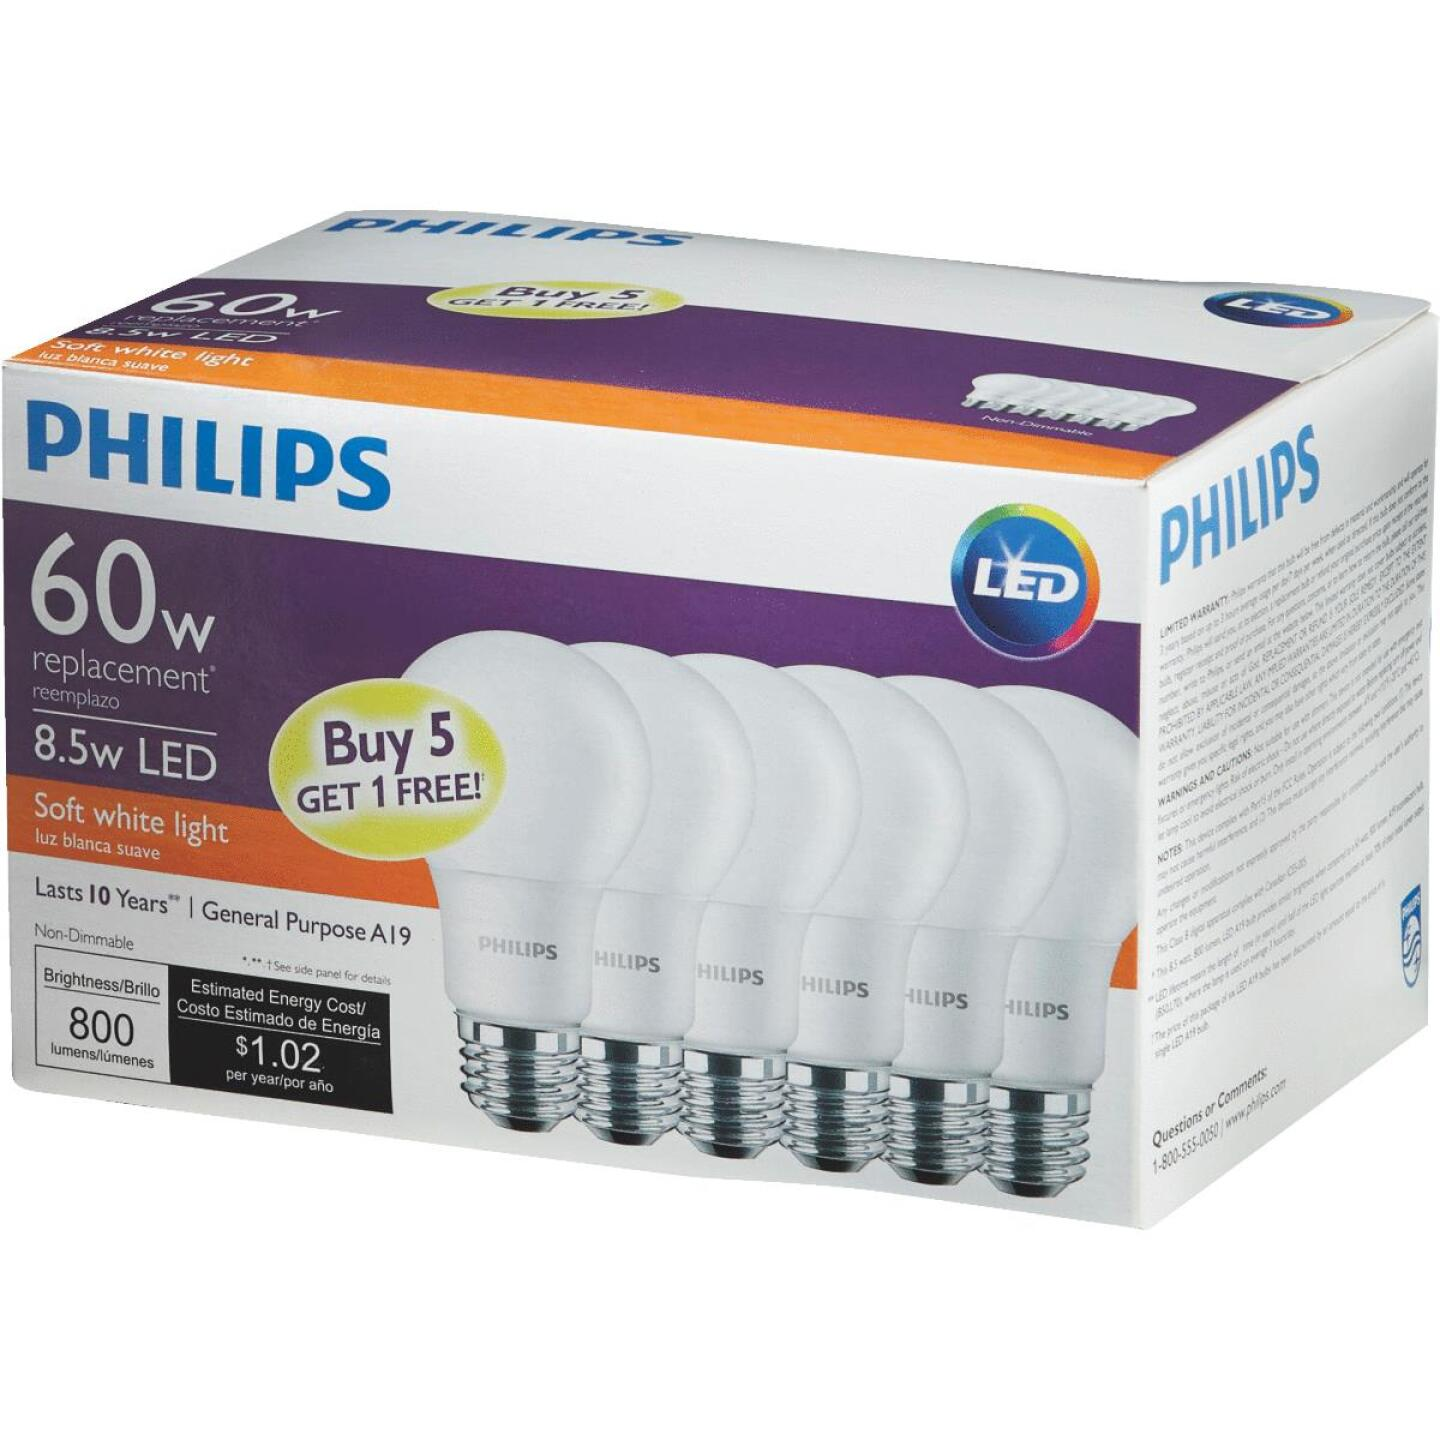 Philips 60W Equivalent Soft White A19 Medium LED Light Bulb (6-Pack) Image 3